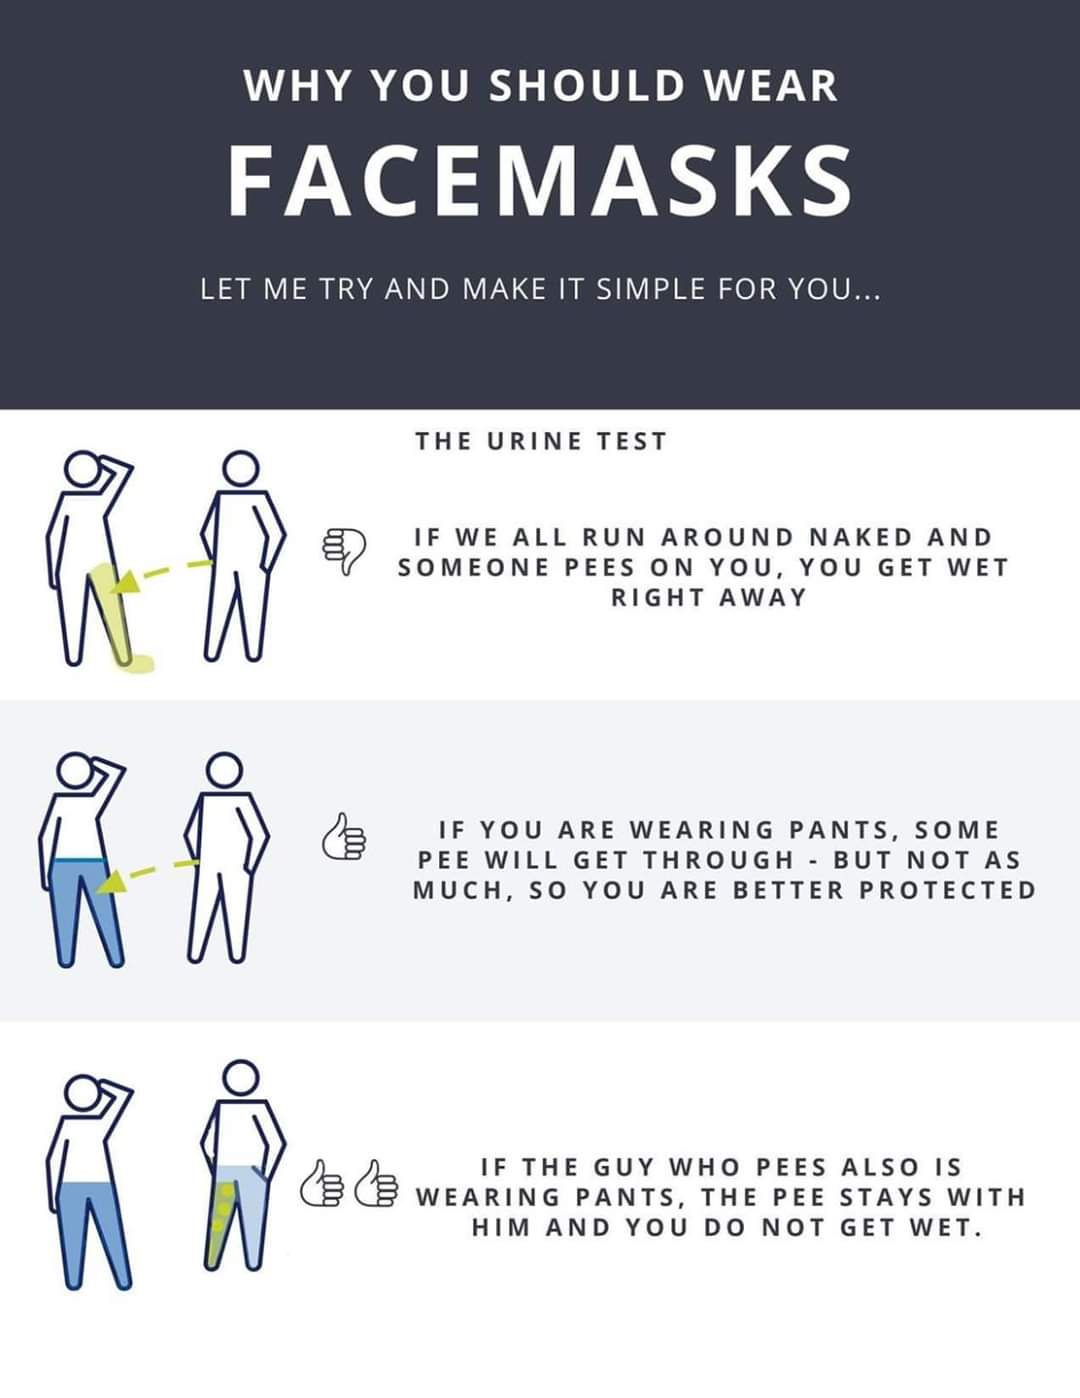 Why you should wear facemask